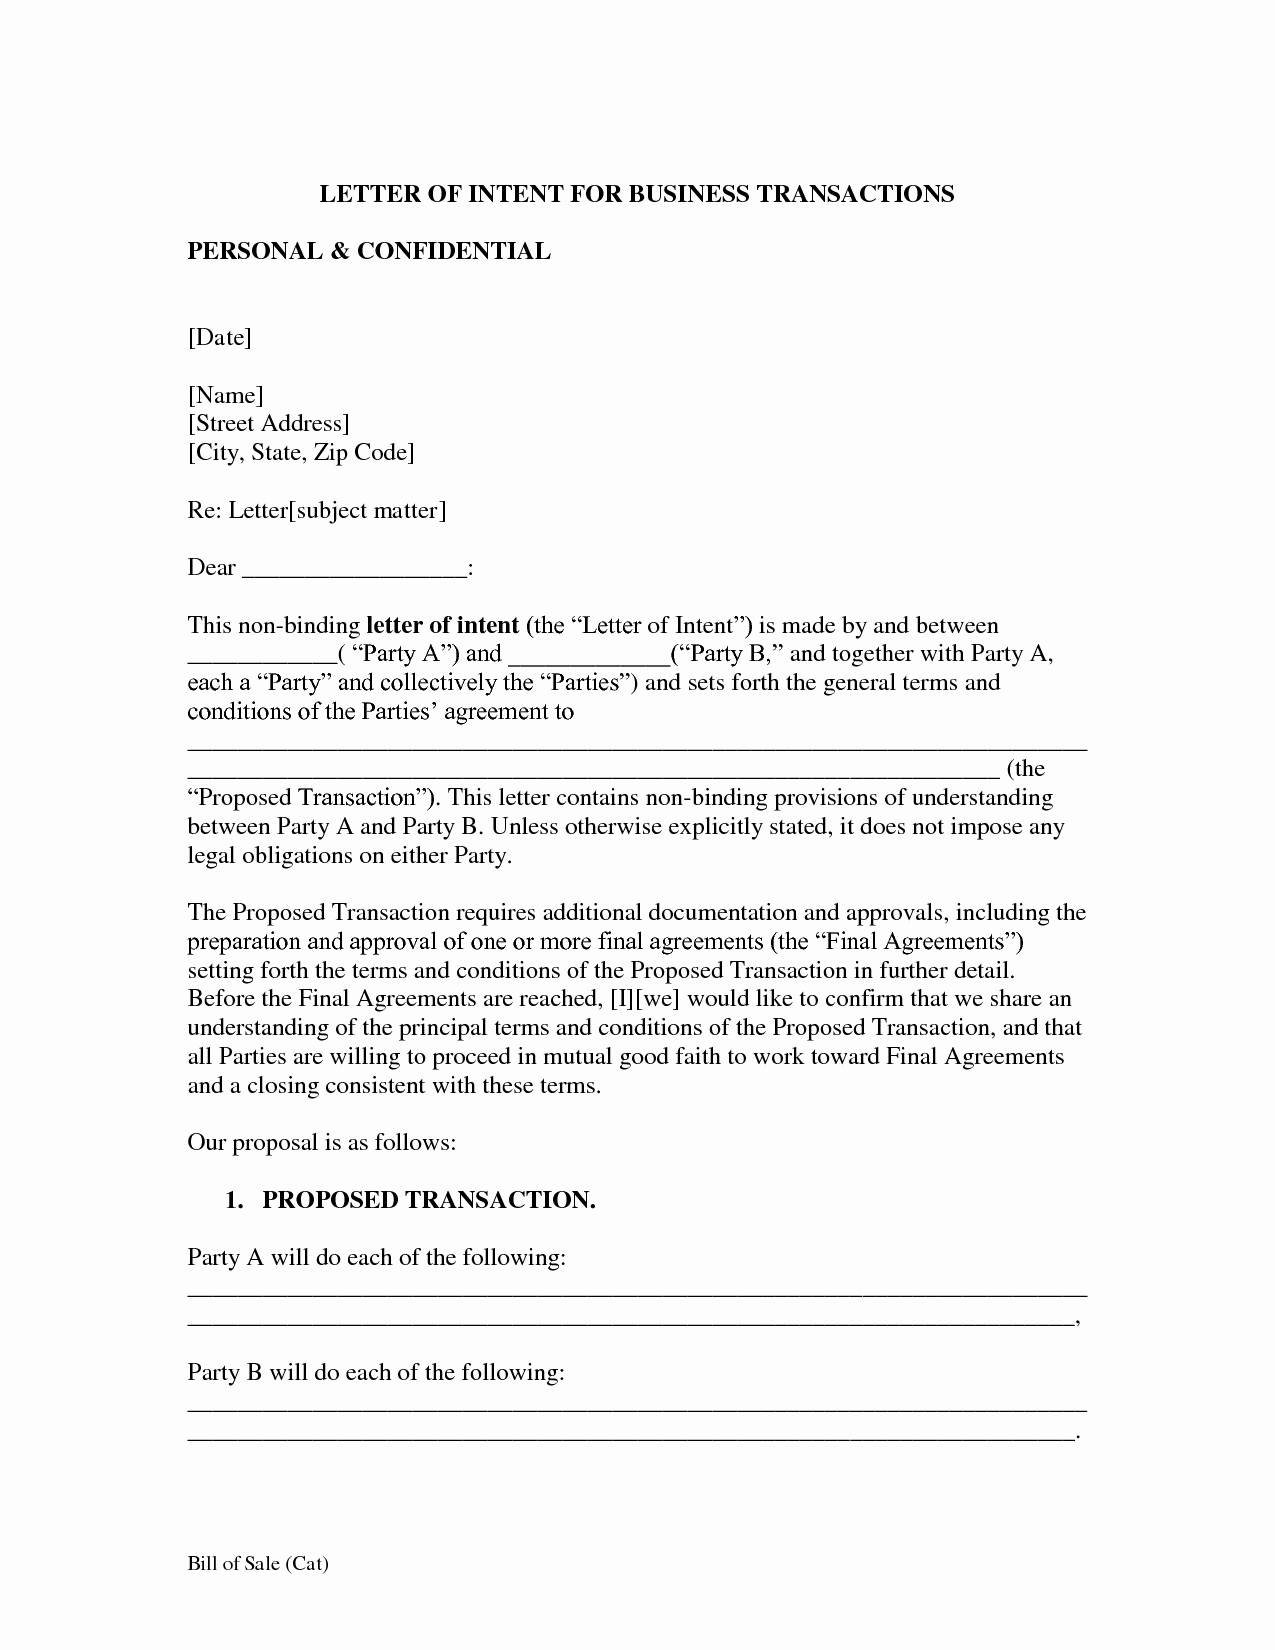 Partnership Letter Of Intent Lovely How to Write A Letter Intent for Business Partnership